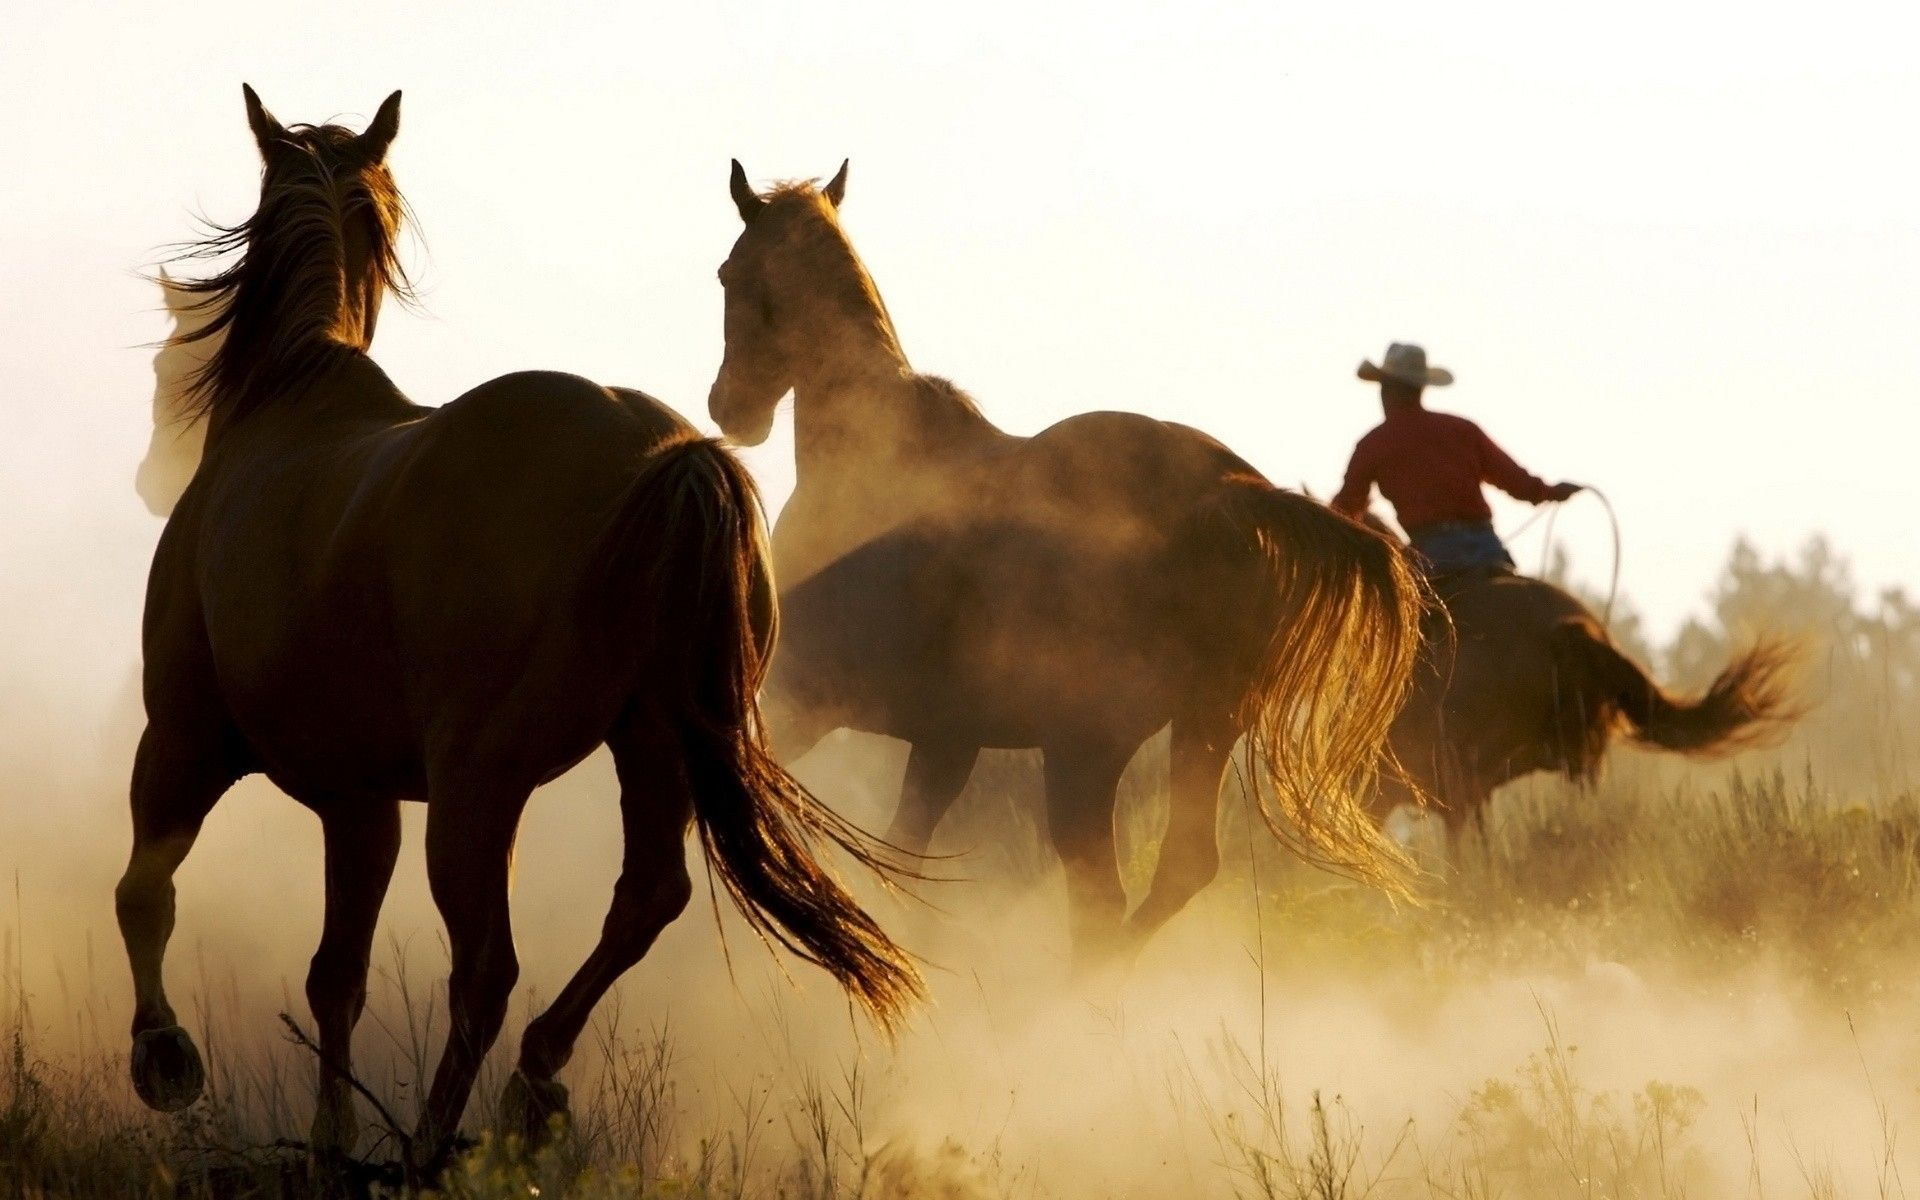 Western Horse Desktop Wallpapers Top Free Western Horse Desktop Backgrounds Wallpaperaccess